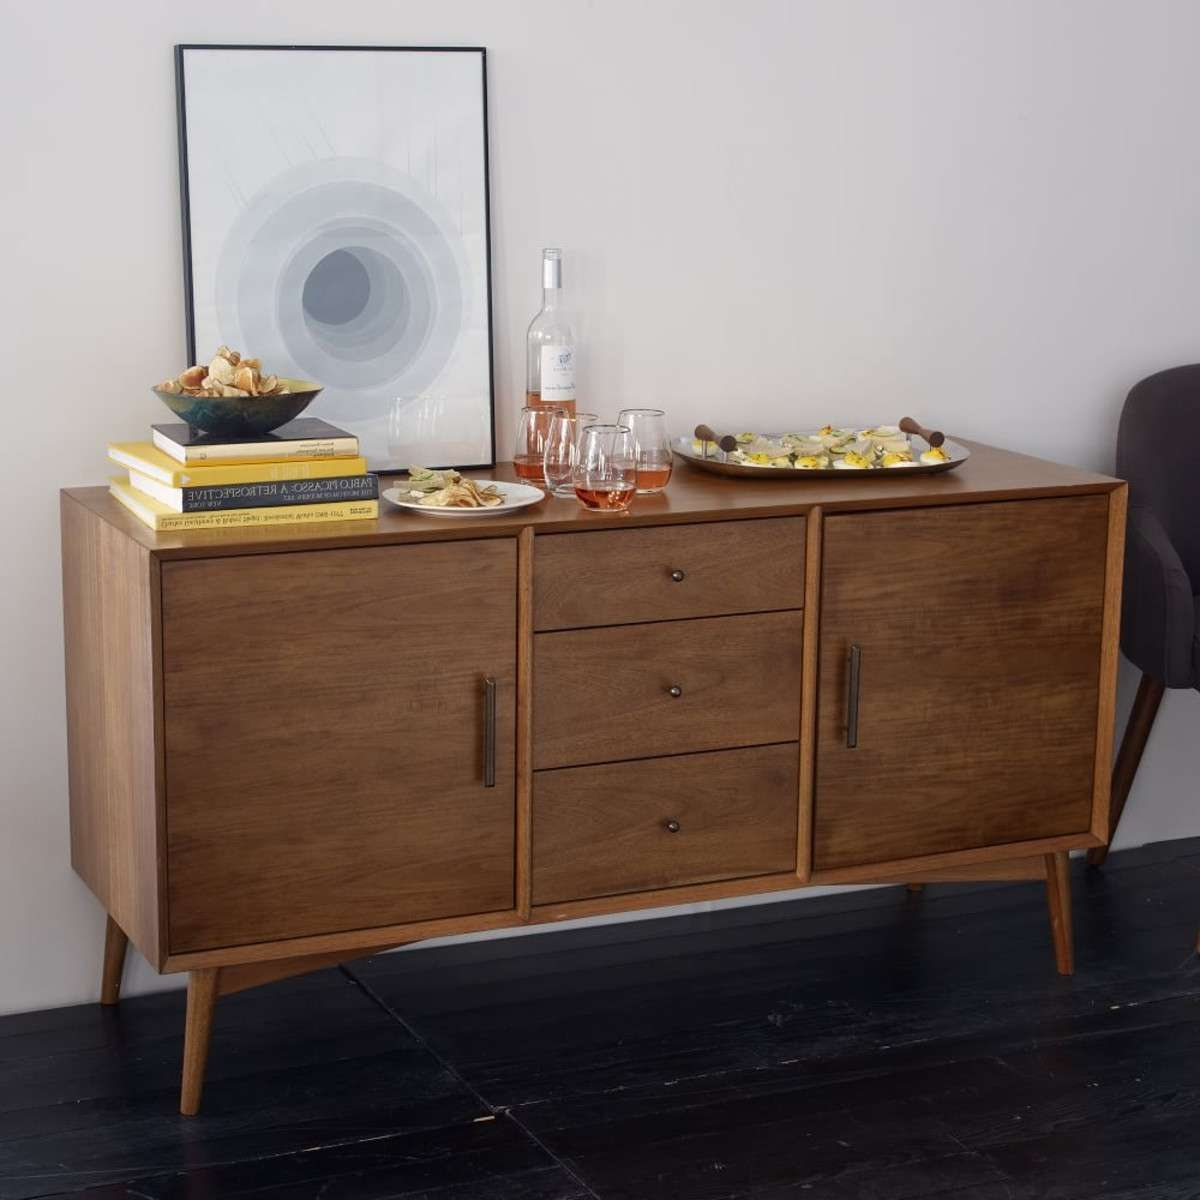 Can You Find Time With An Antique Mid Century Buffet Or Sideboard With Midcentury Sideboards (View 2 of 20)